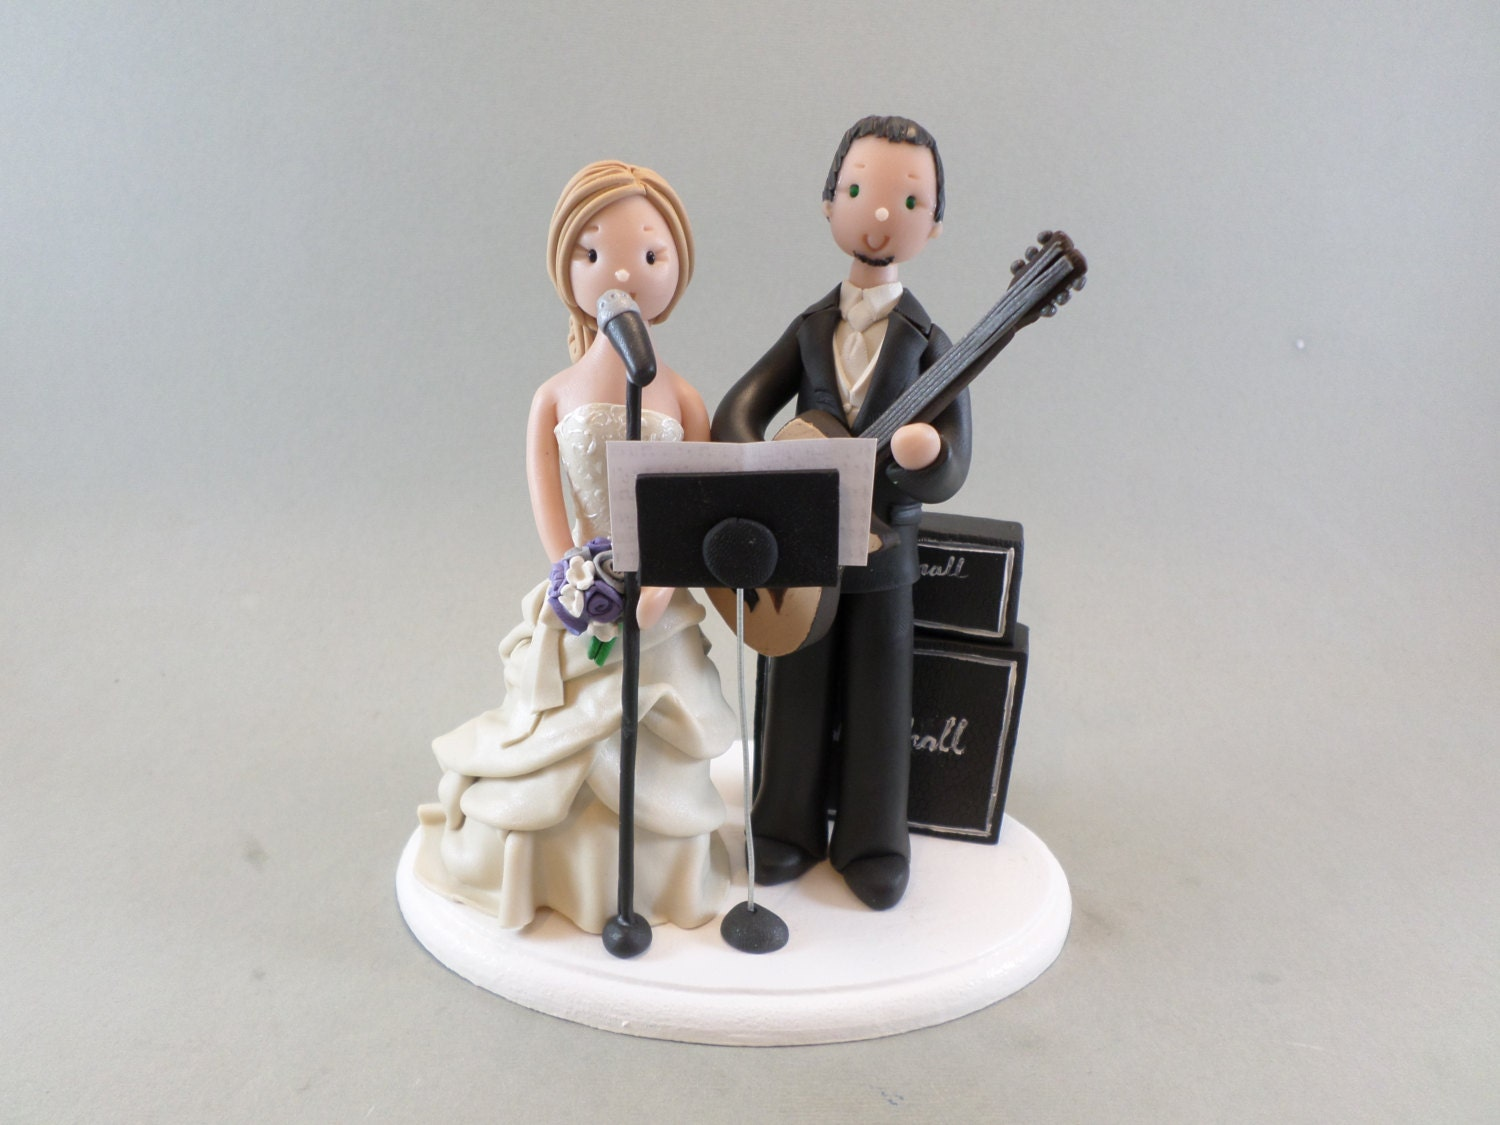 musical wedding cake toppers amp groom customized theme wedding cake topper 17665